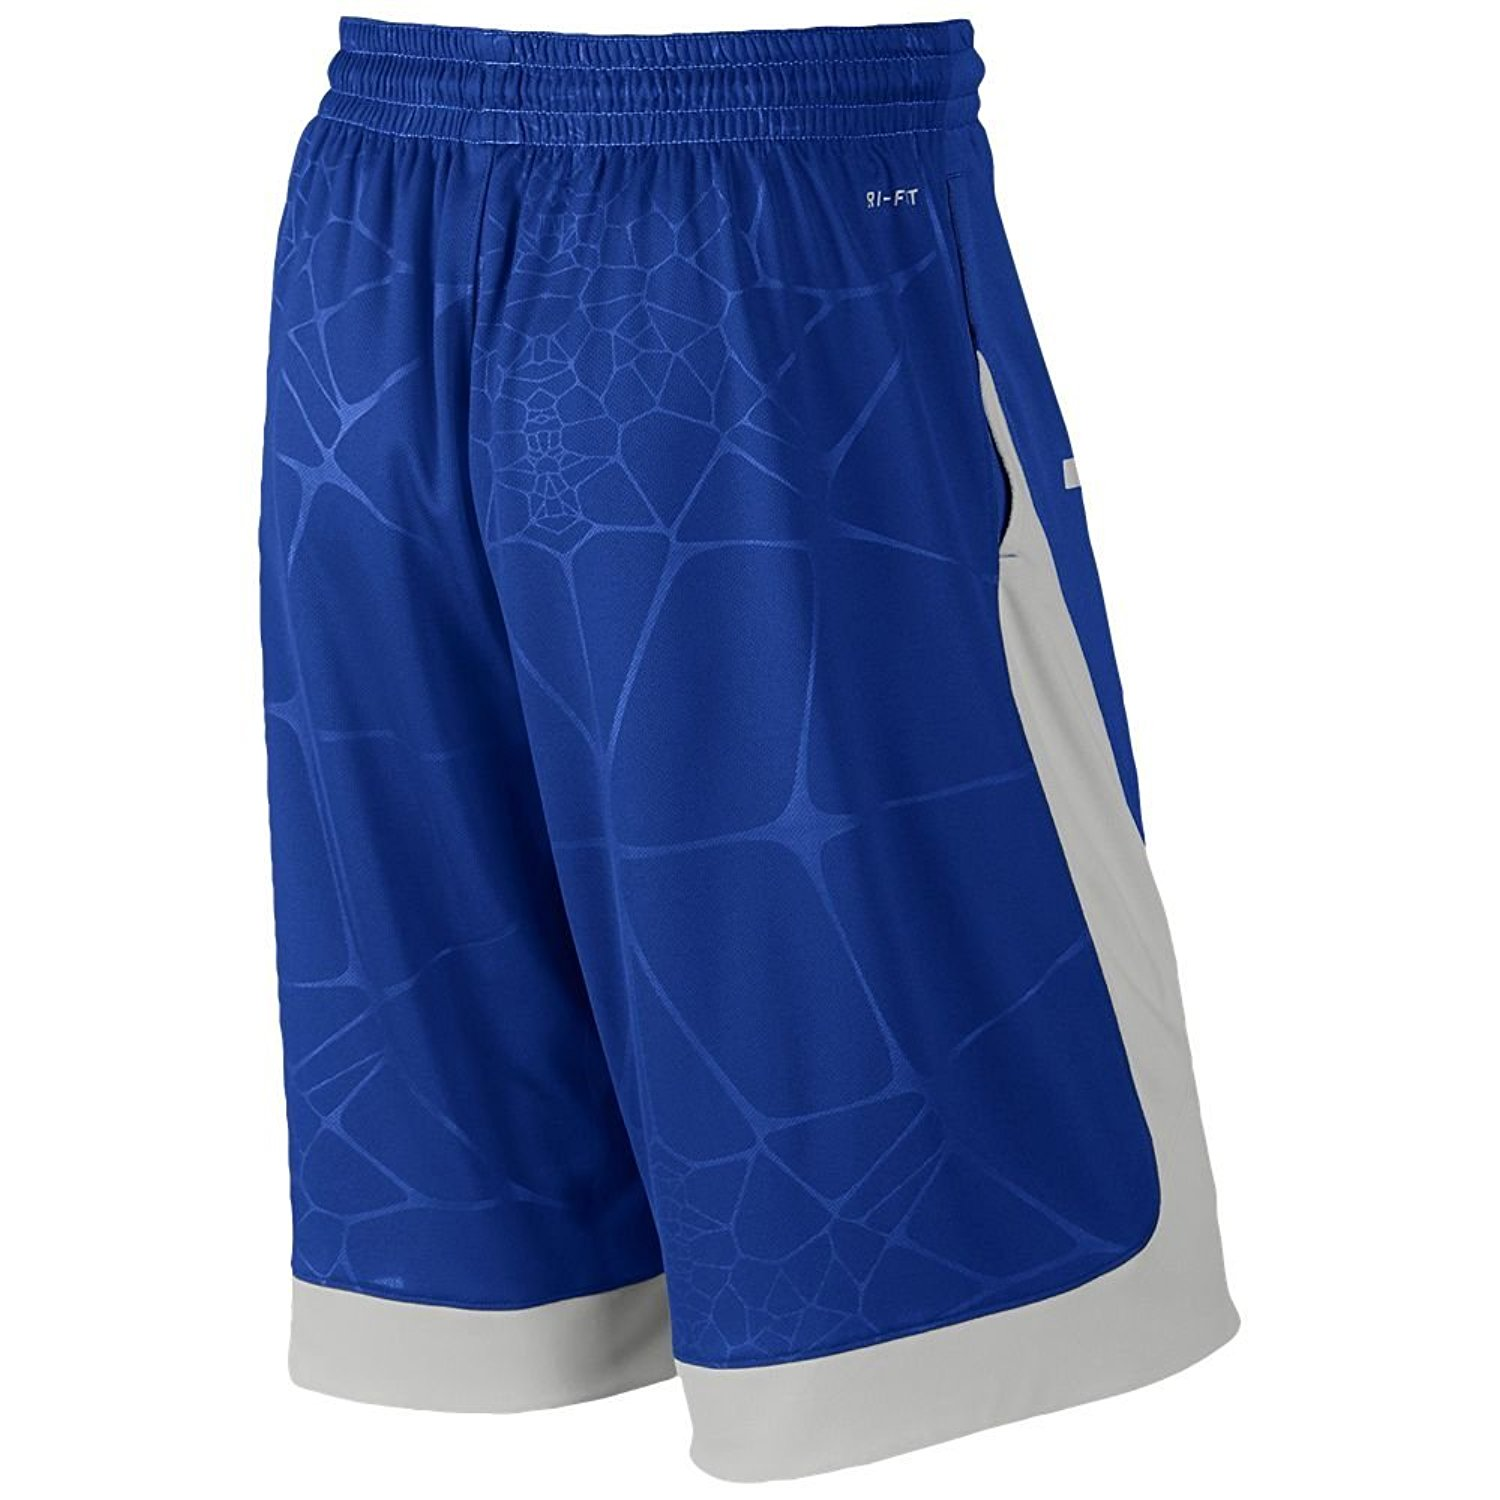 meet 43fa3 23219 Get Quotations · Nike Lebron Helix Essential Dri Fit Basketball Shorts Blue  Grey